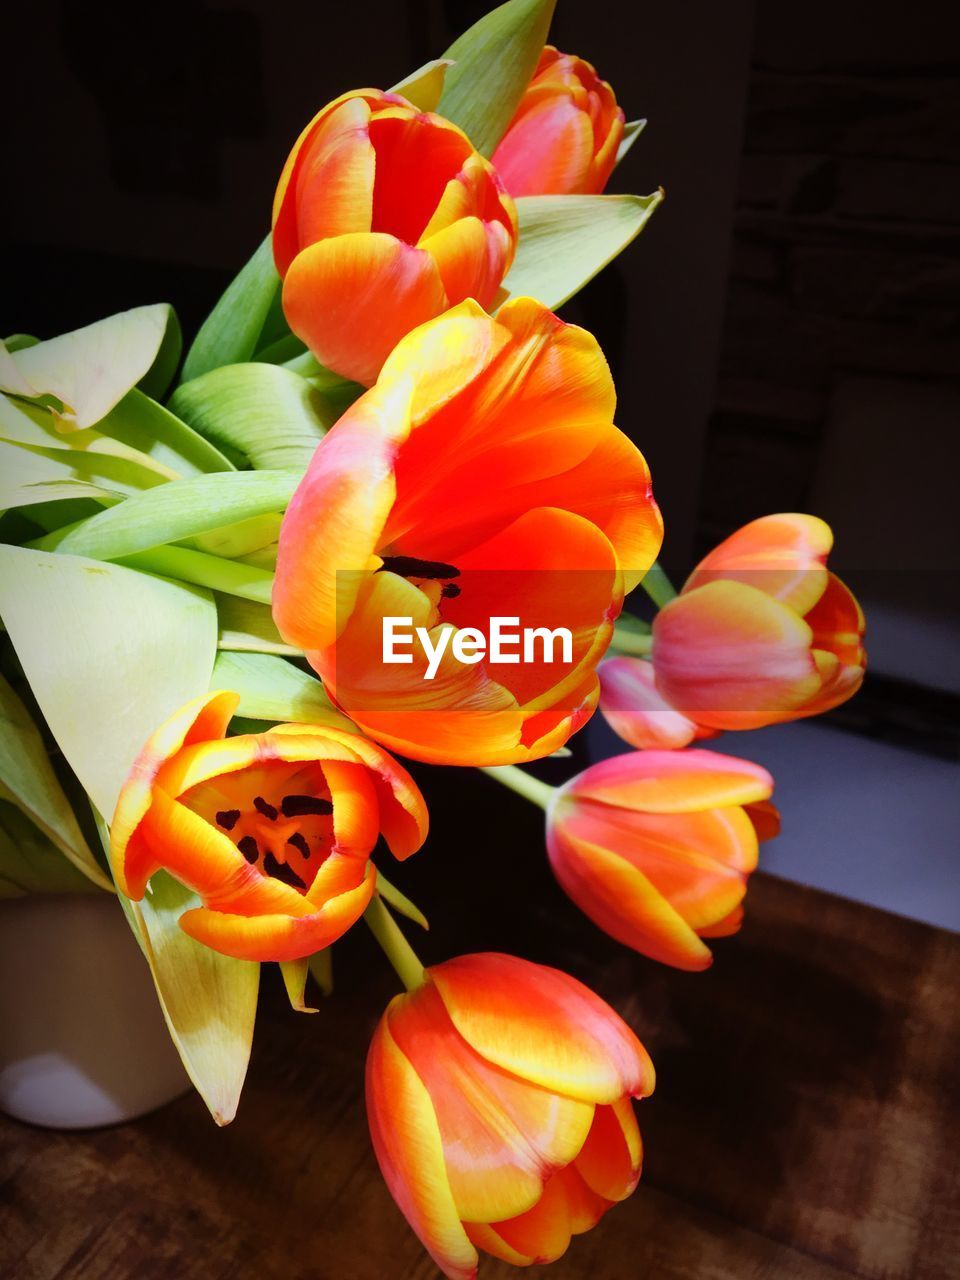 flower, petal, orange color, freshness, no people, flower head, beauty in nature, nature, fragility, plant, growth, blooming, close-up, indoors, day